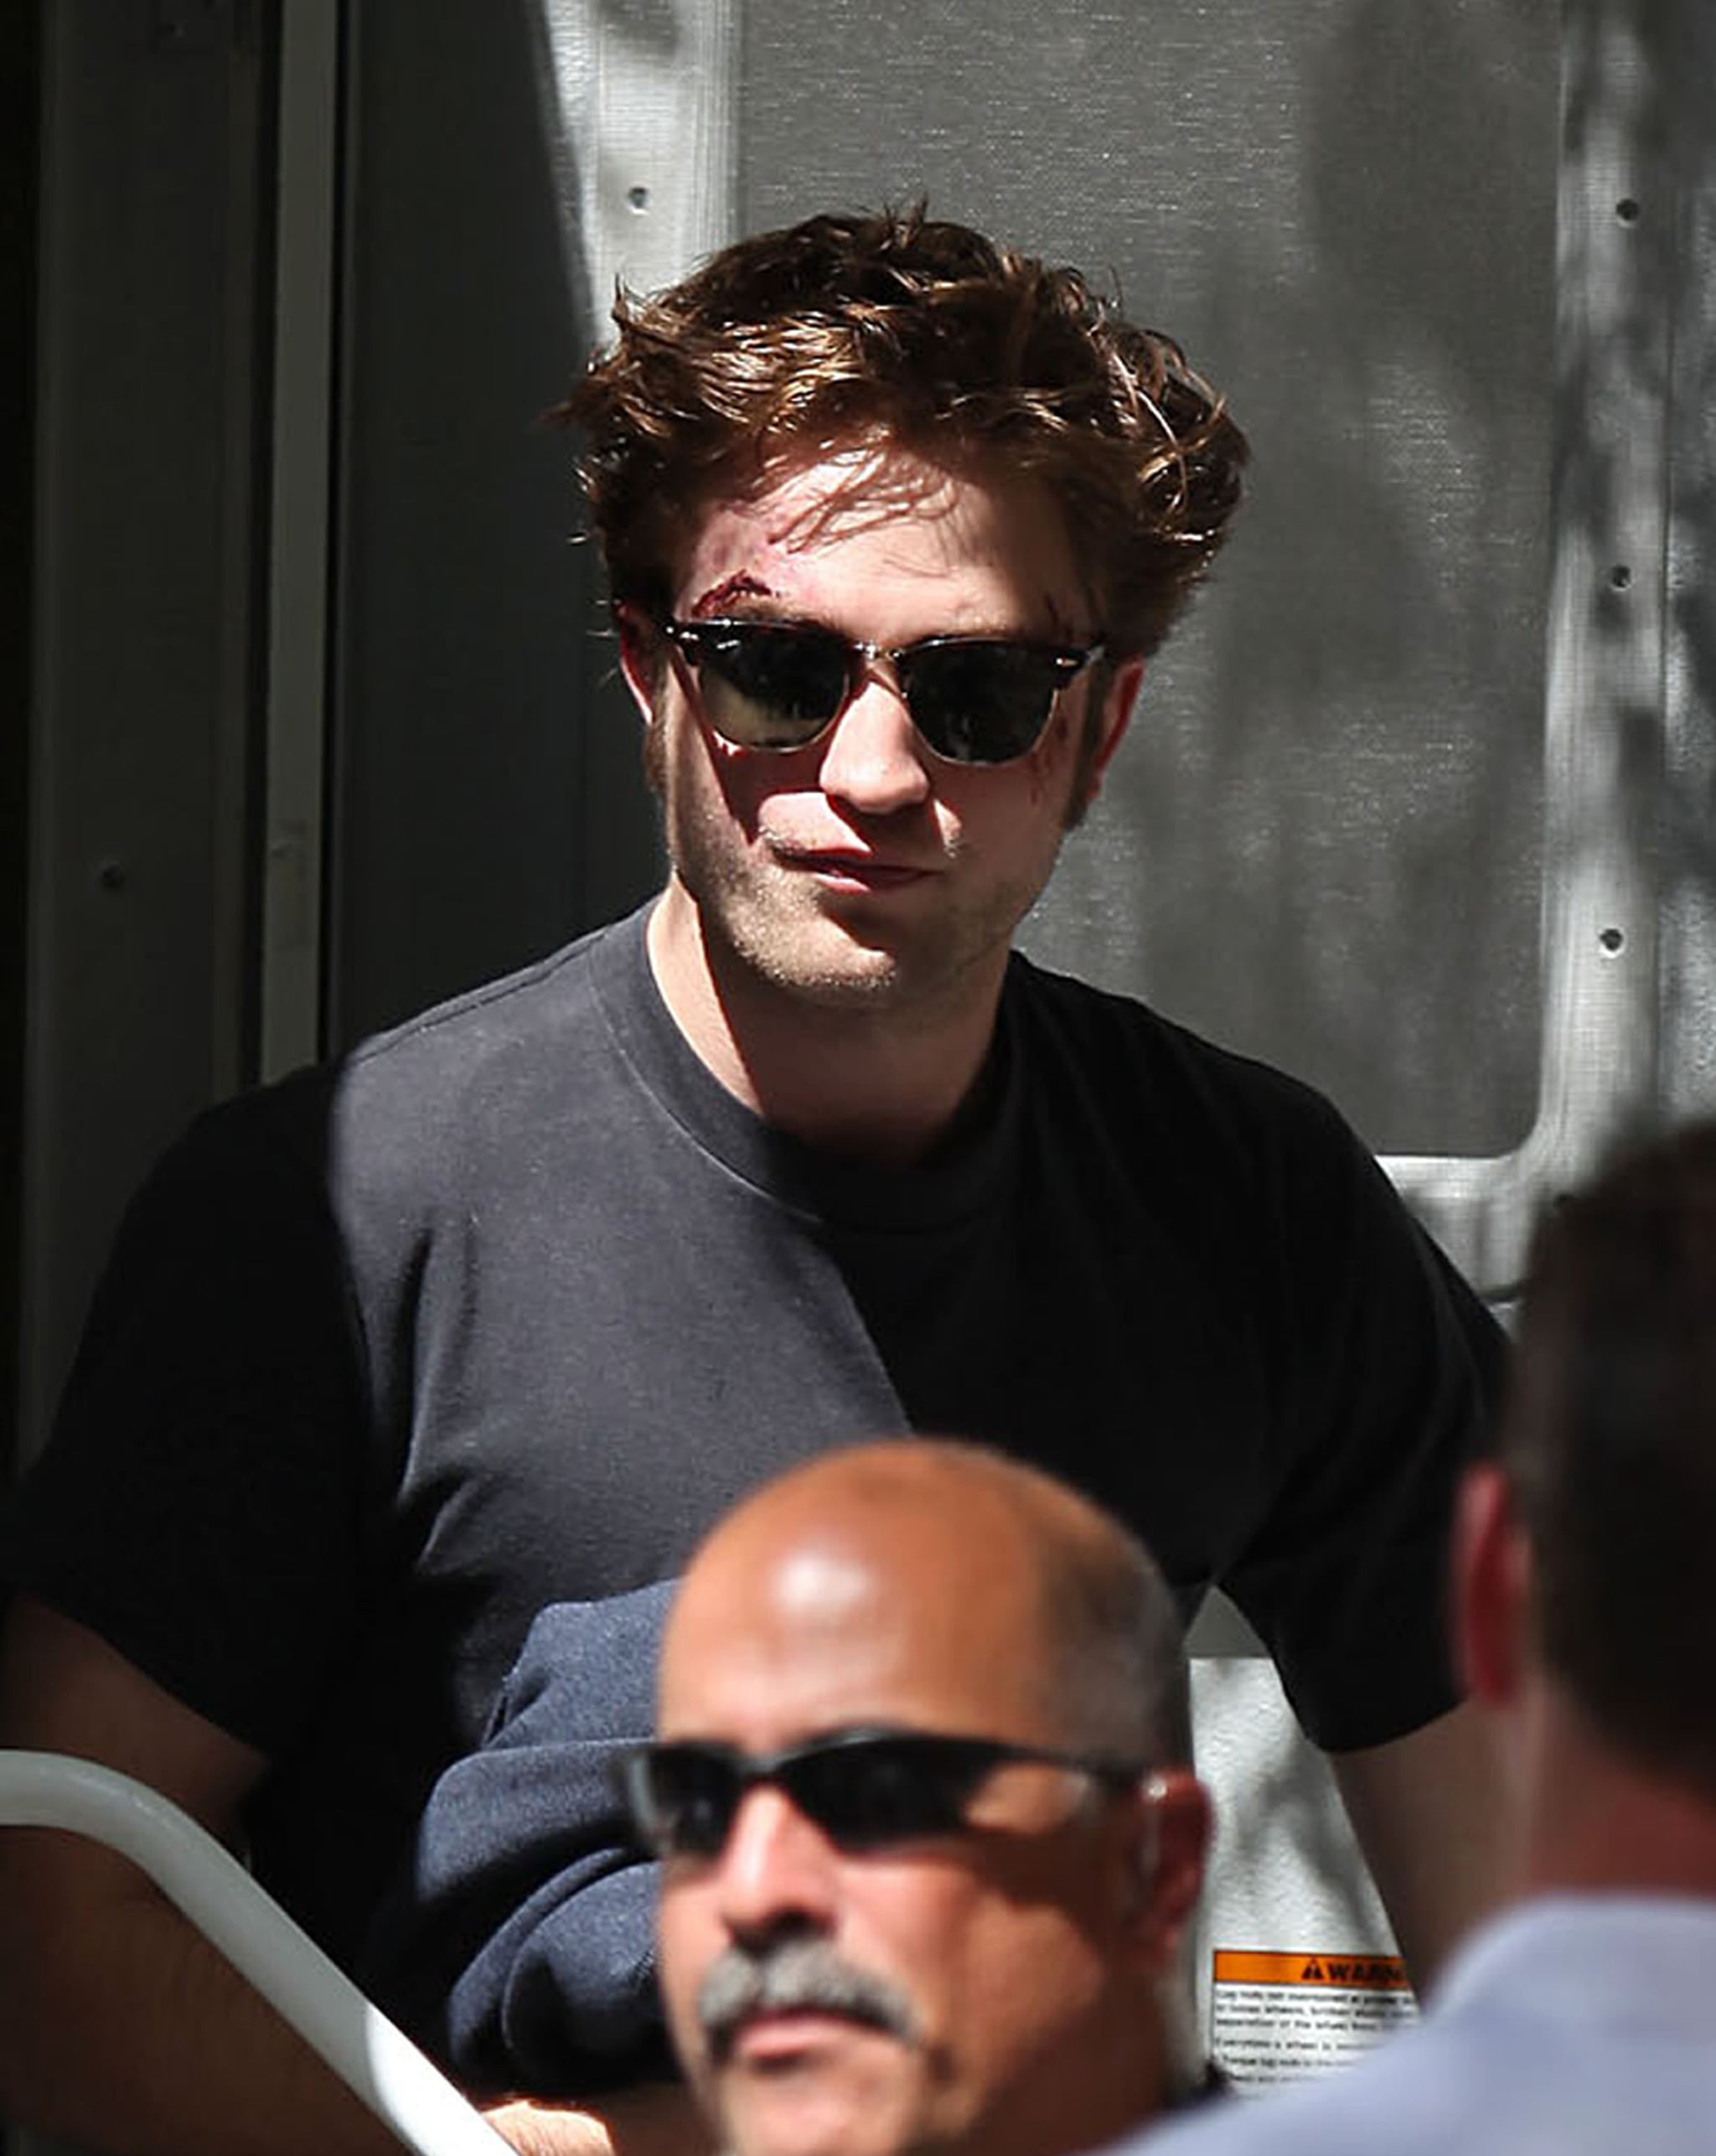 Photos Of Robert Pattinson Looking Bruised, Beaten Up, And